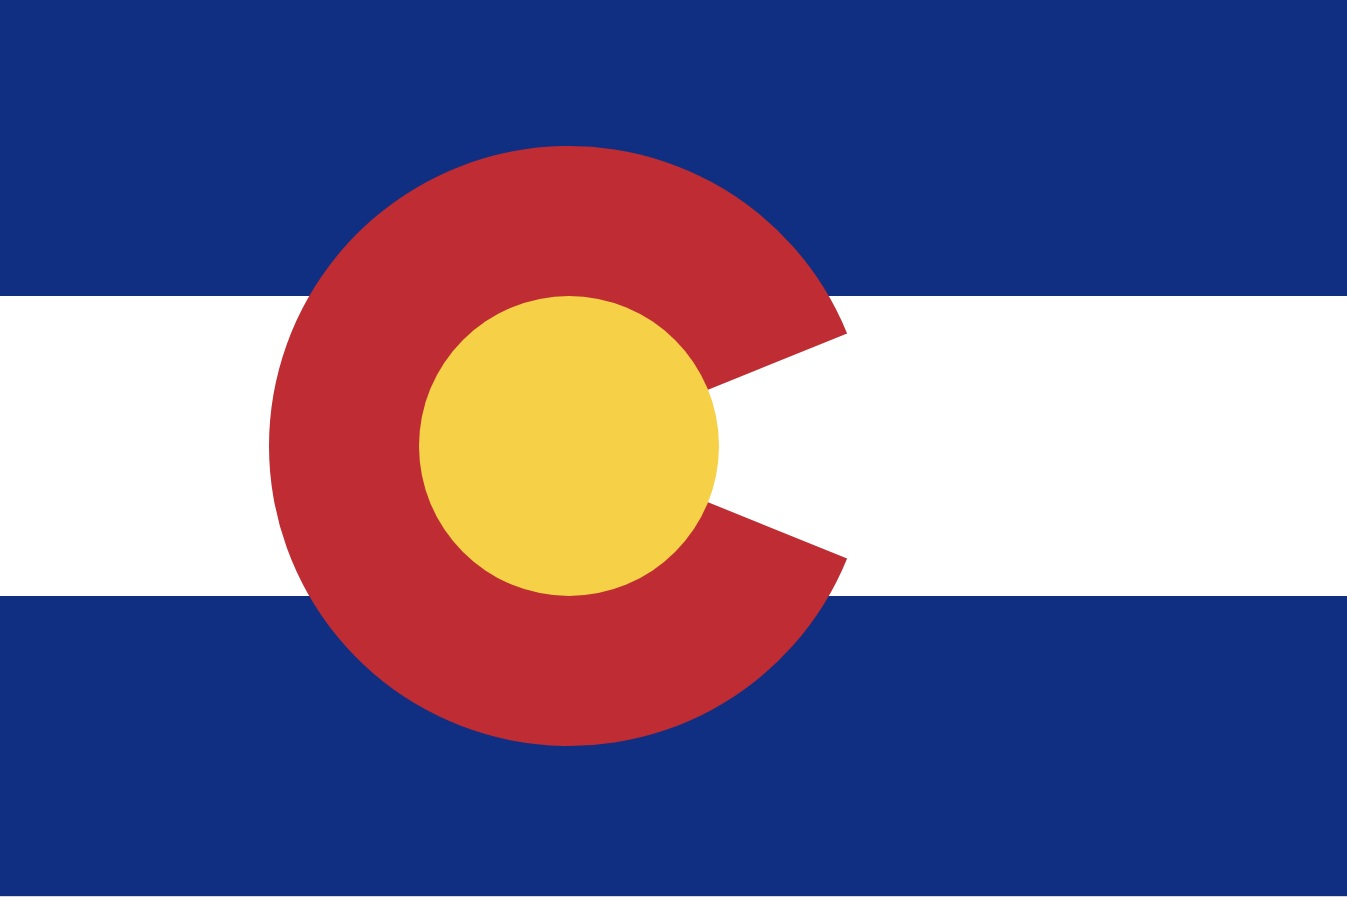 The flag of the State of Colorado, USA